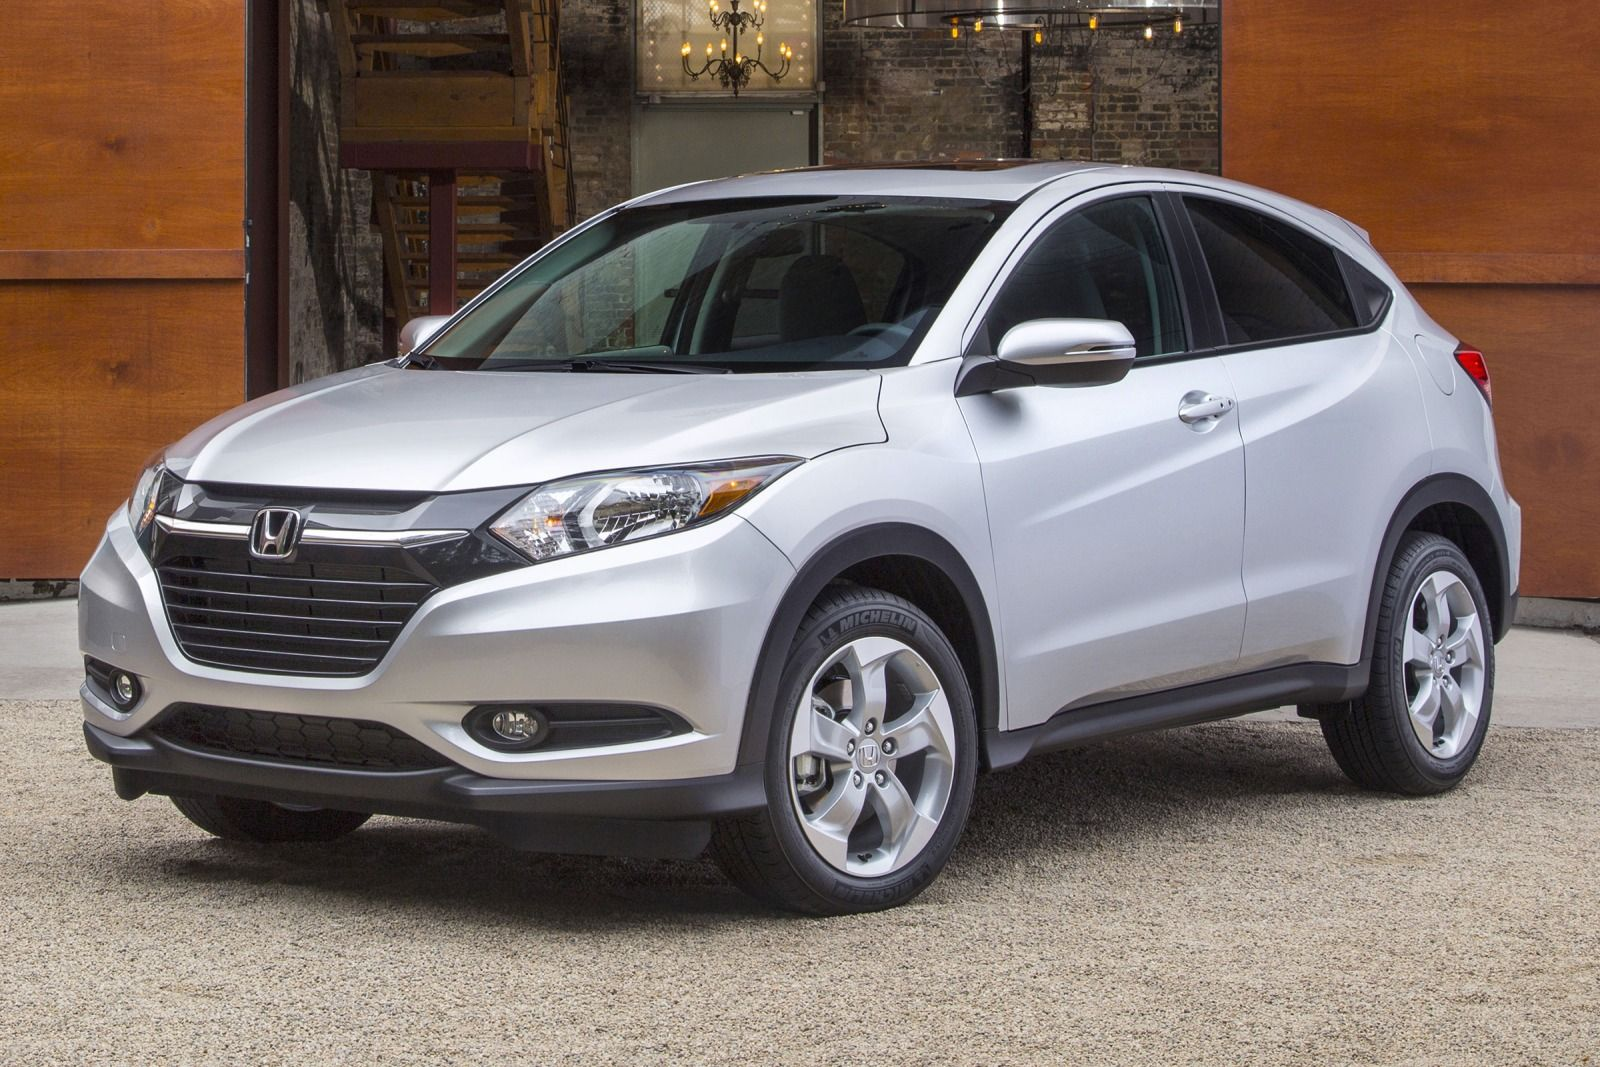 Honda HRV LX vs EX vs EXL What Are the Differences